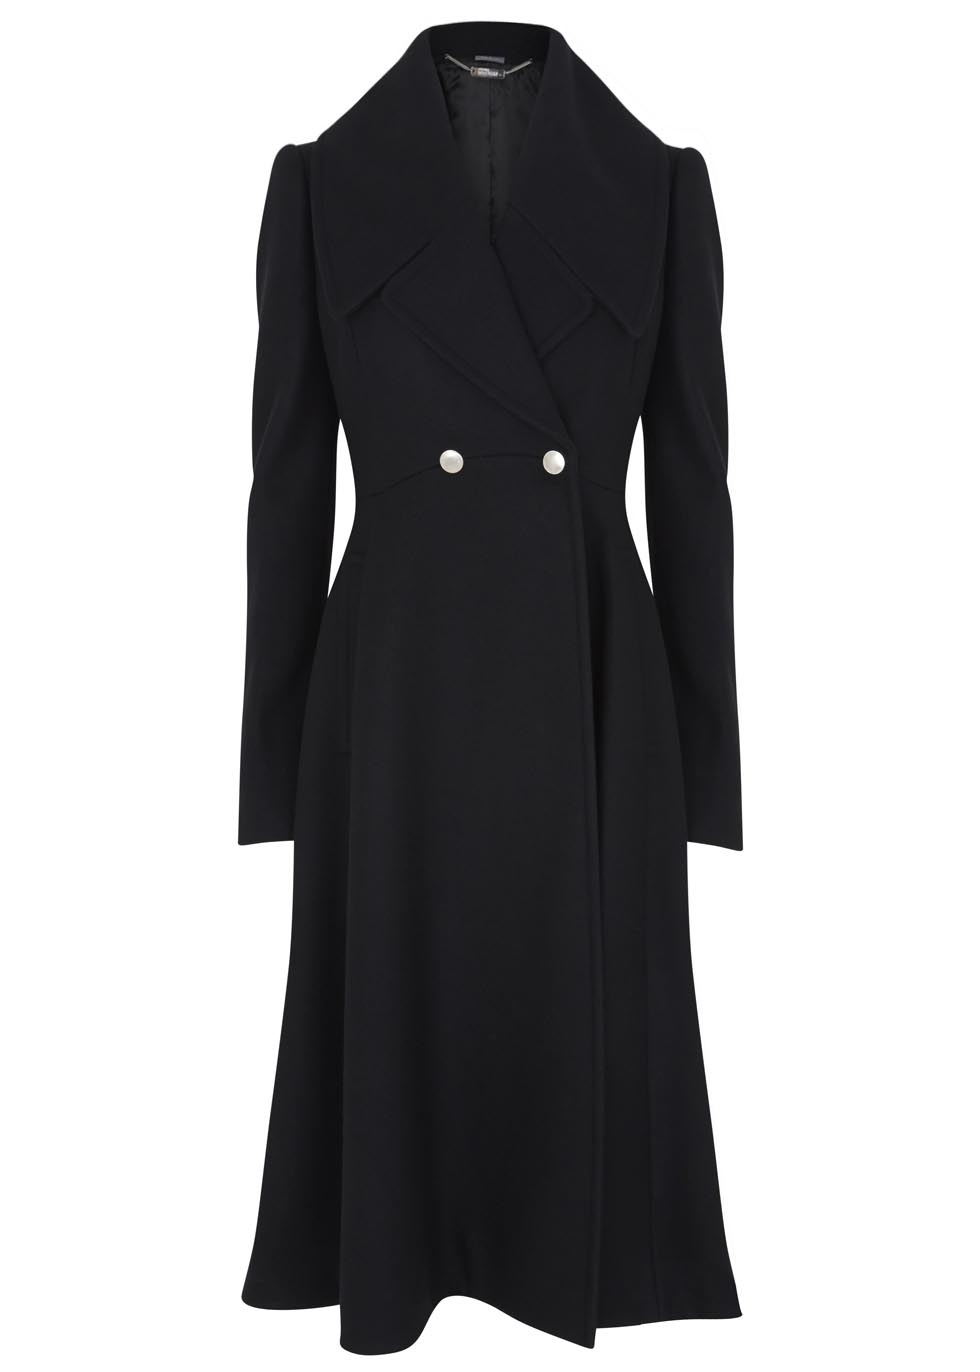 Alexander McQueen Black Flared Wool Coat - Kate Middleton Jackets ...